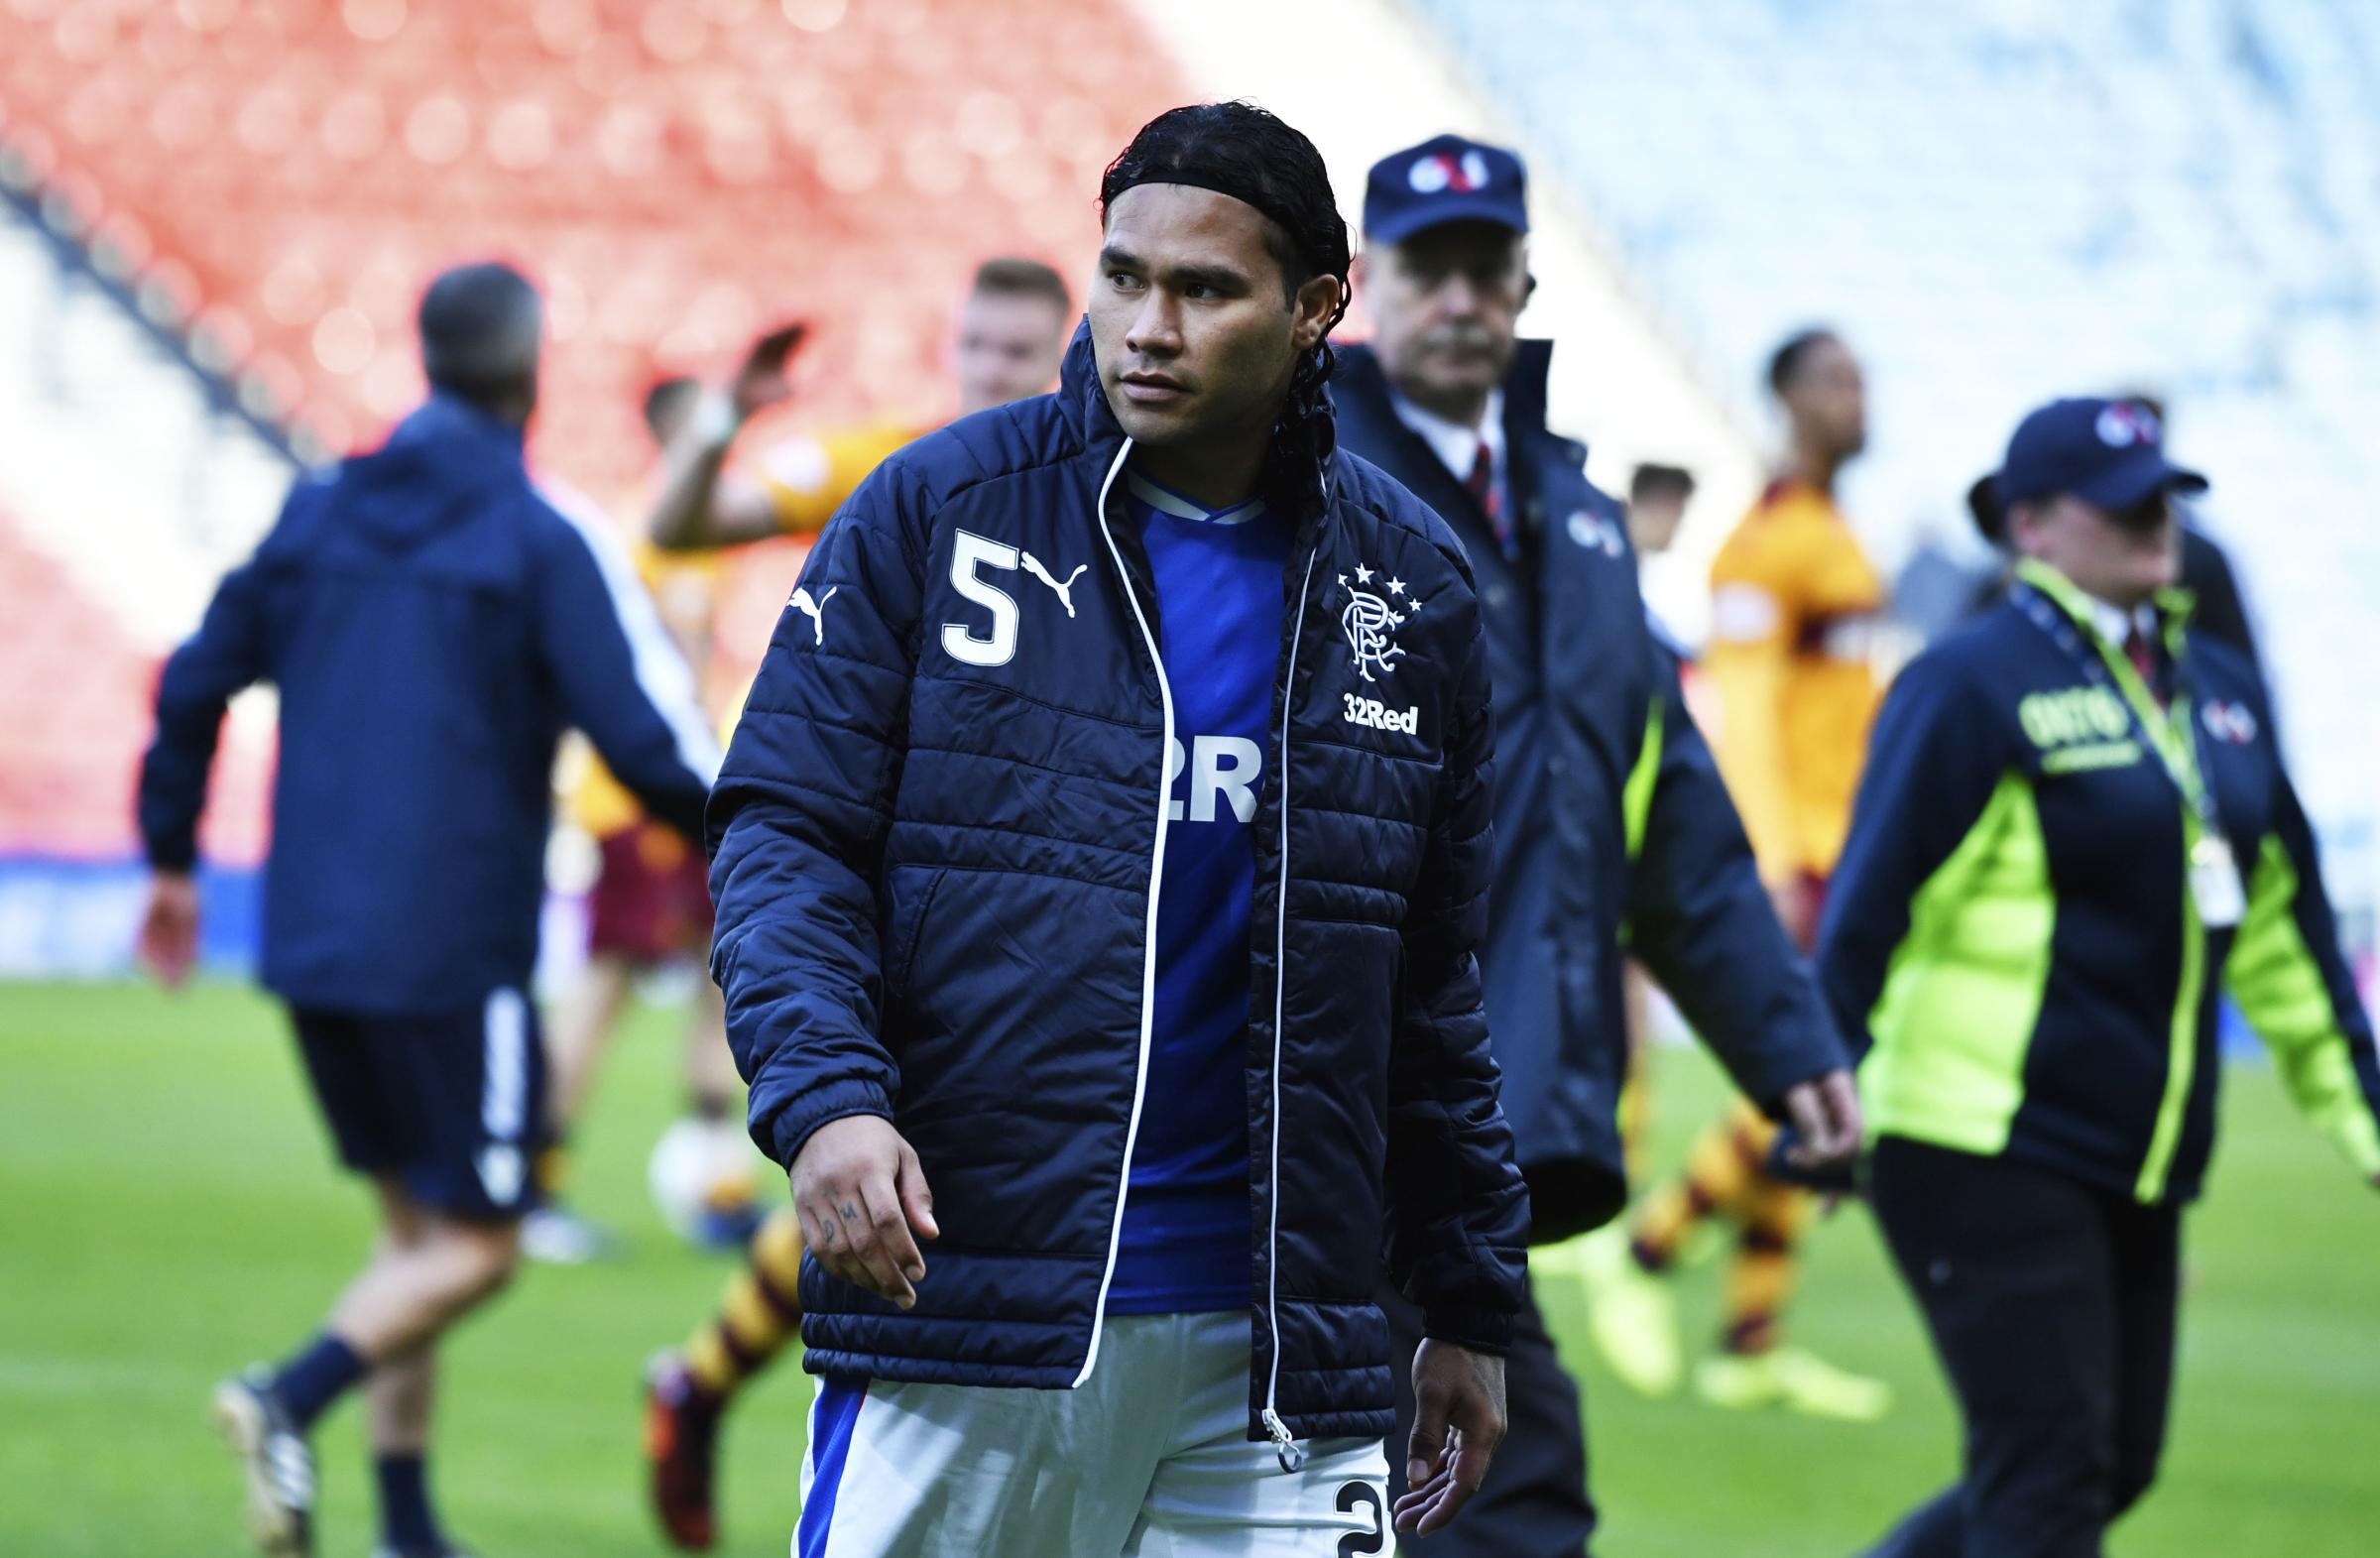 Rangers forward Carlos Pena at full-time on Sunday.